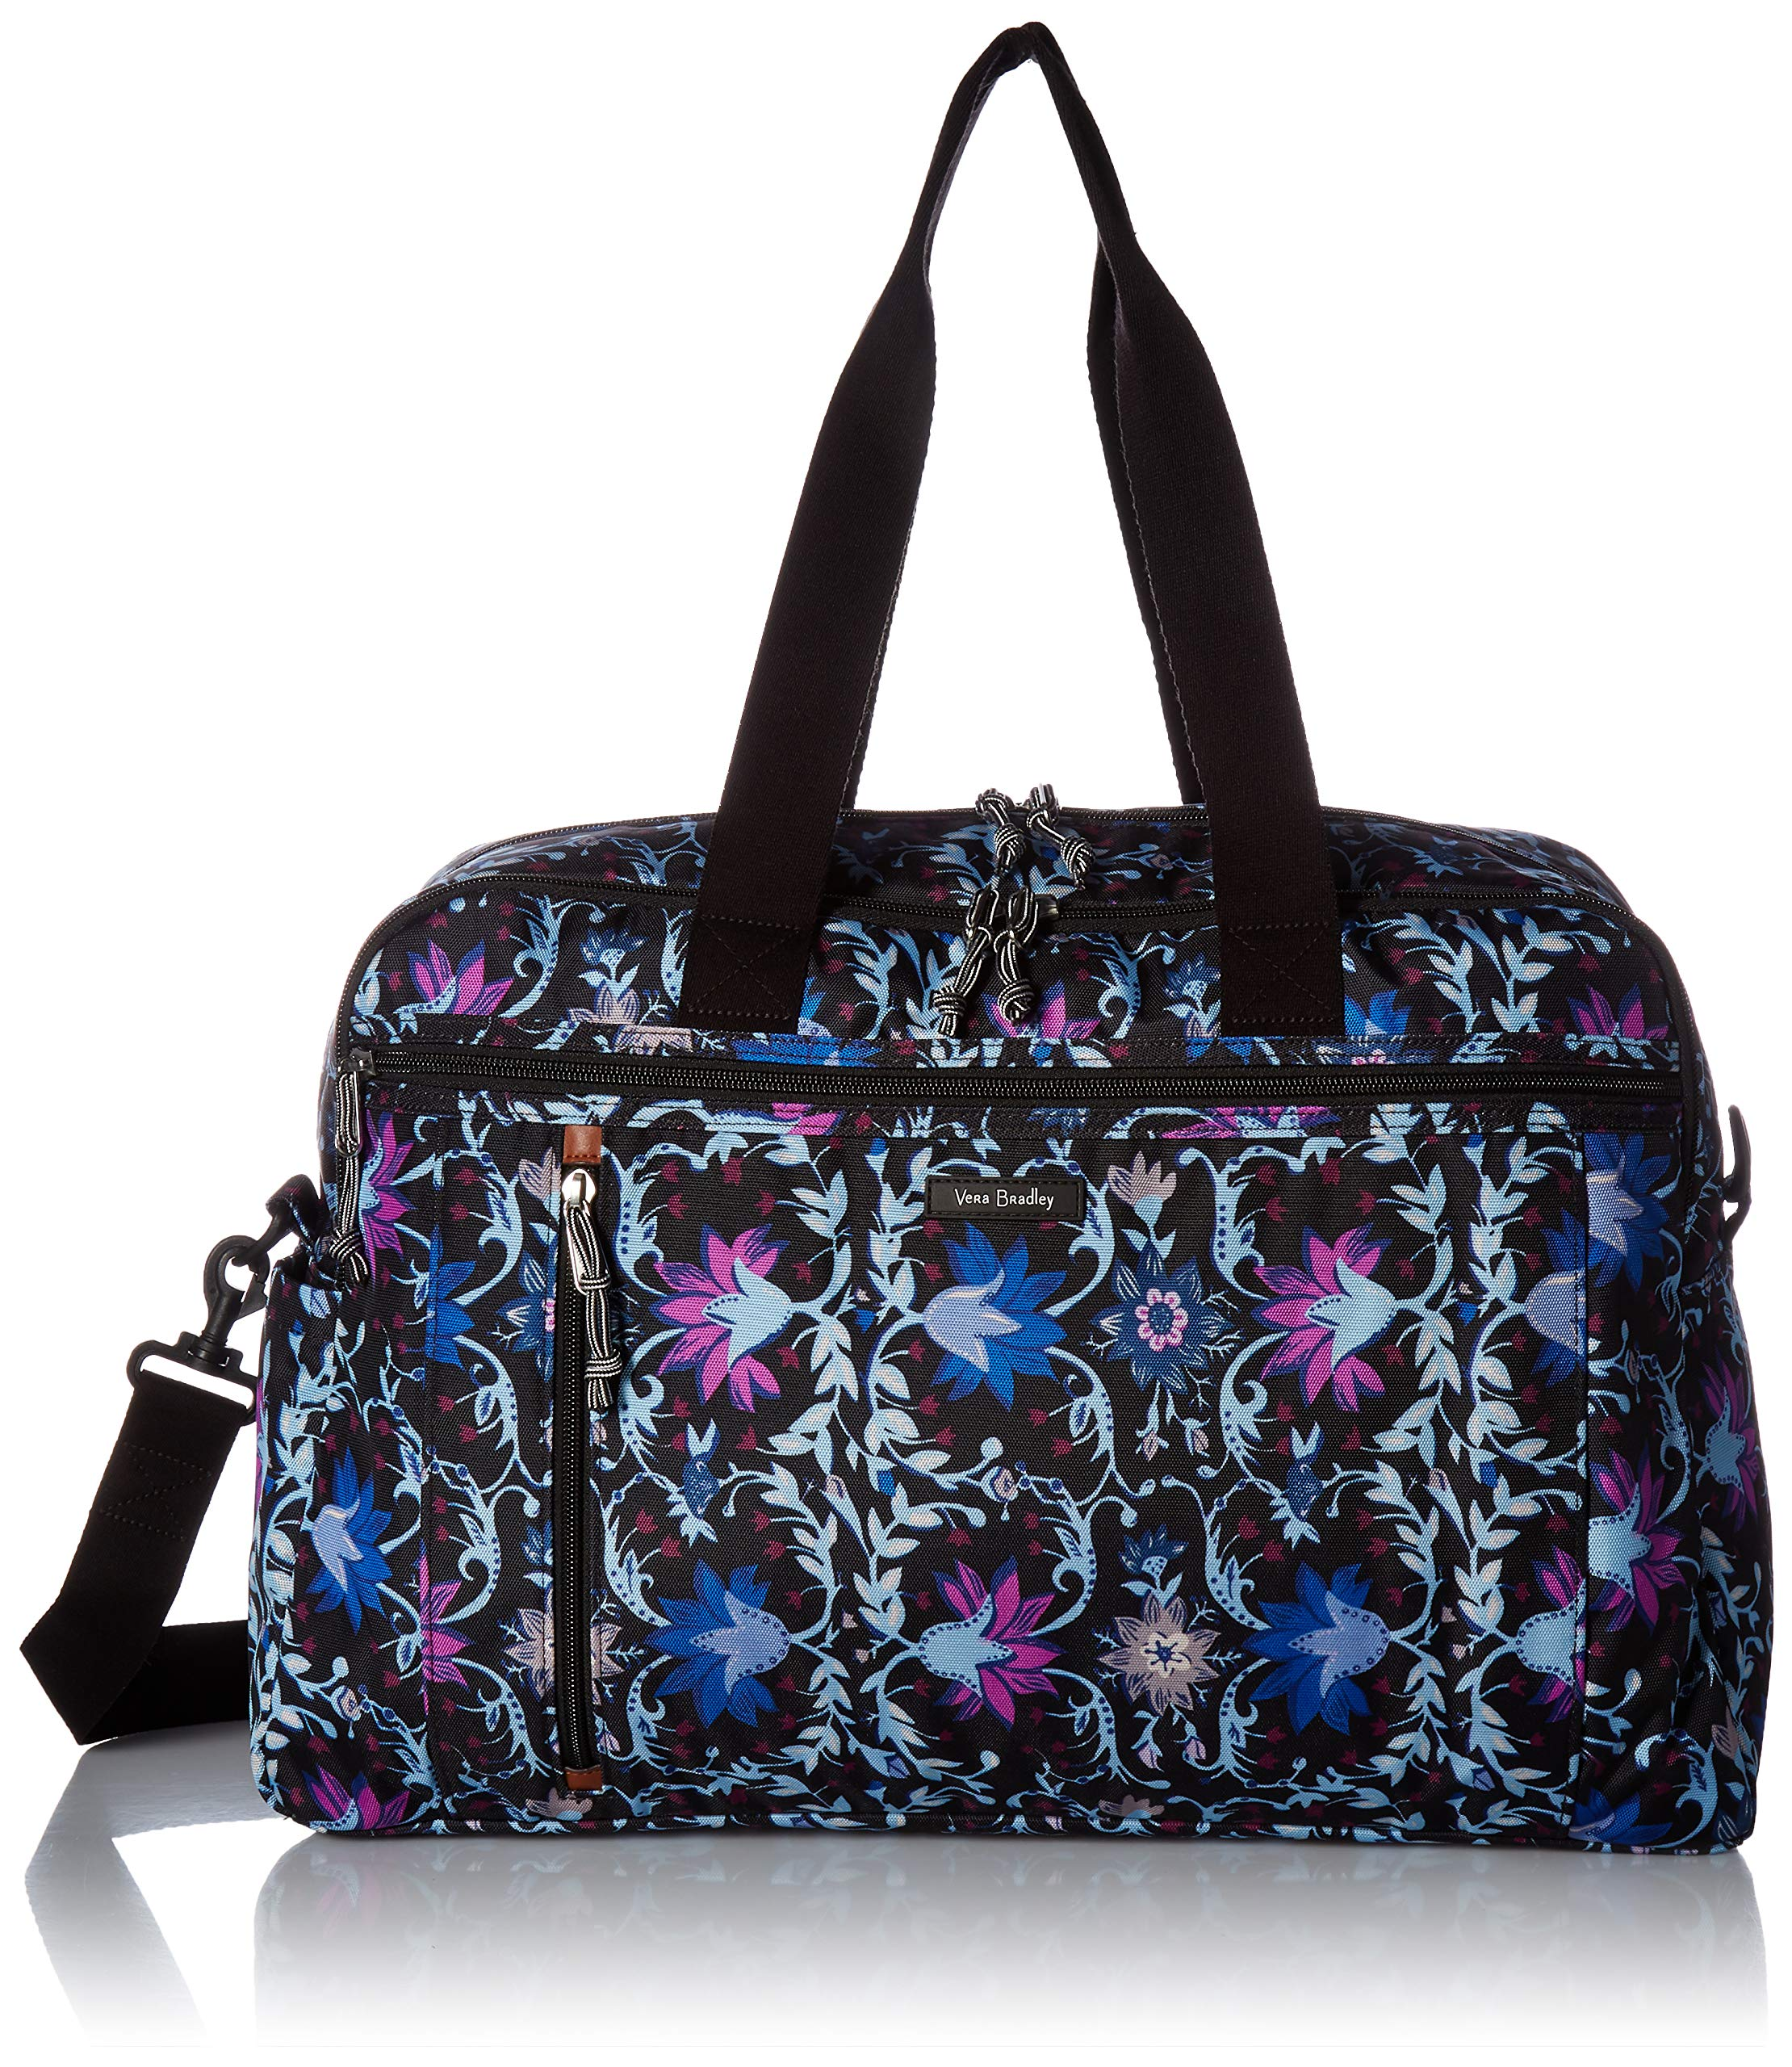 Vera Bradley womens Lighten Up Weekender Travel Bag, Polyester, Bramble Vines, One Size